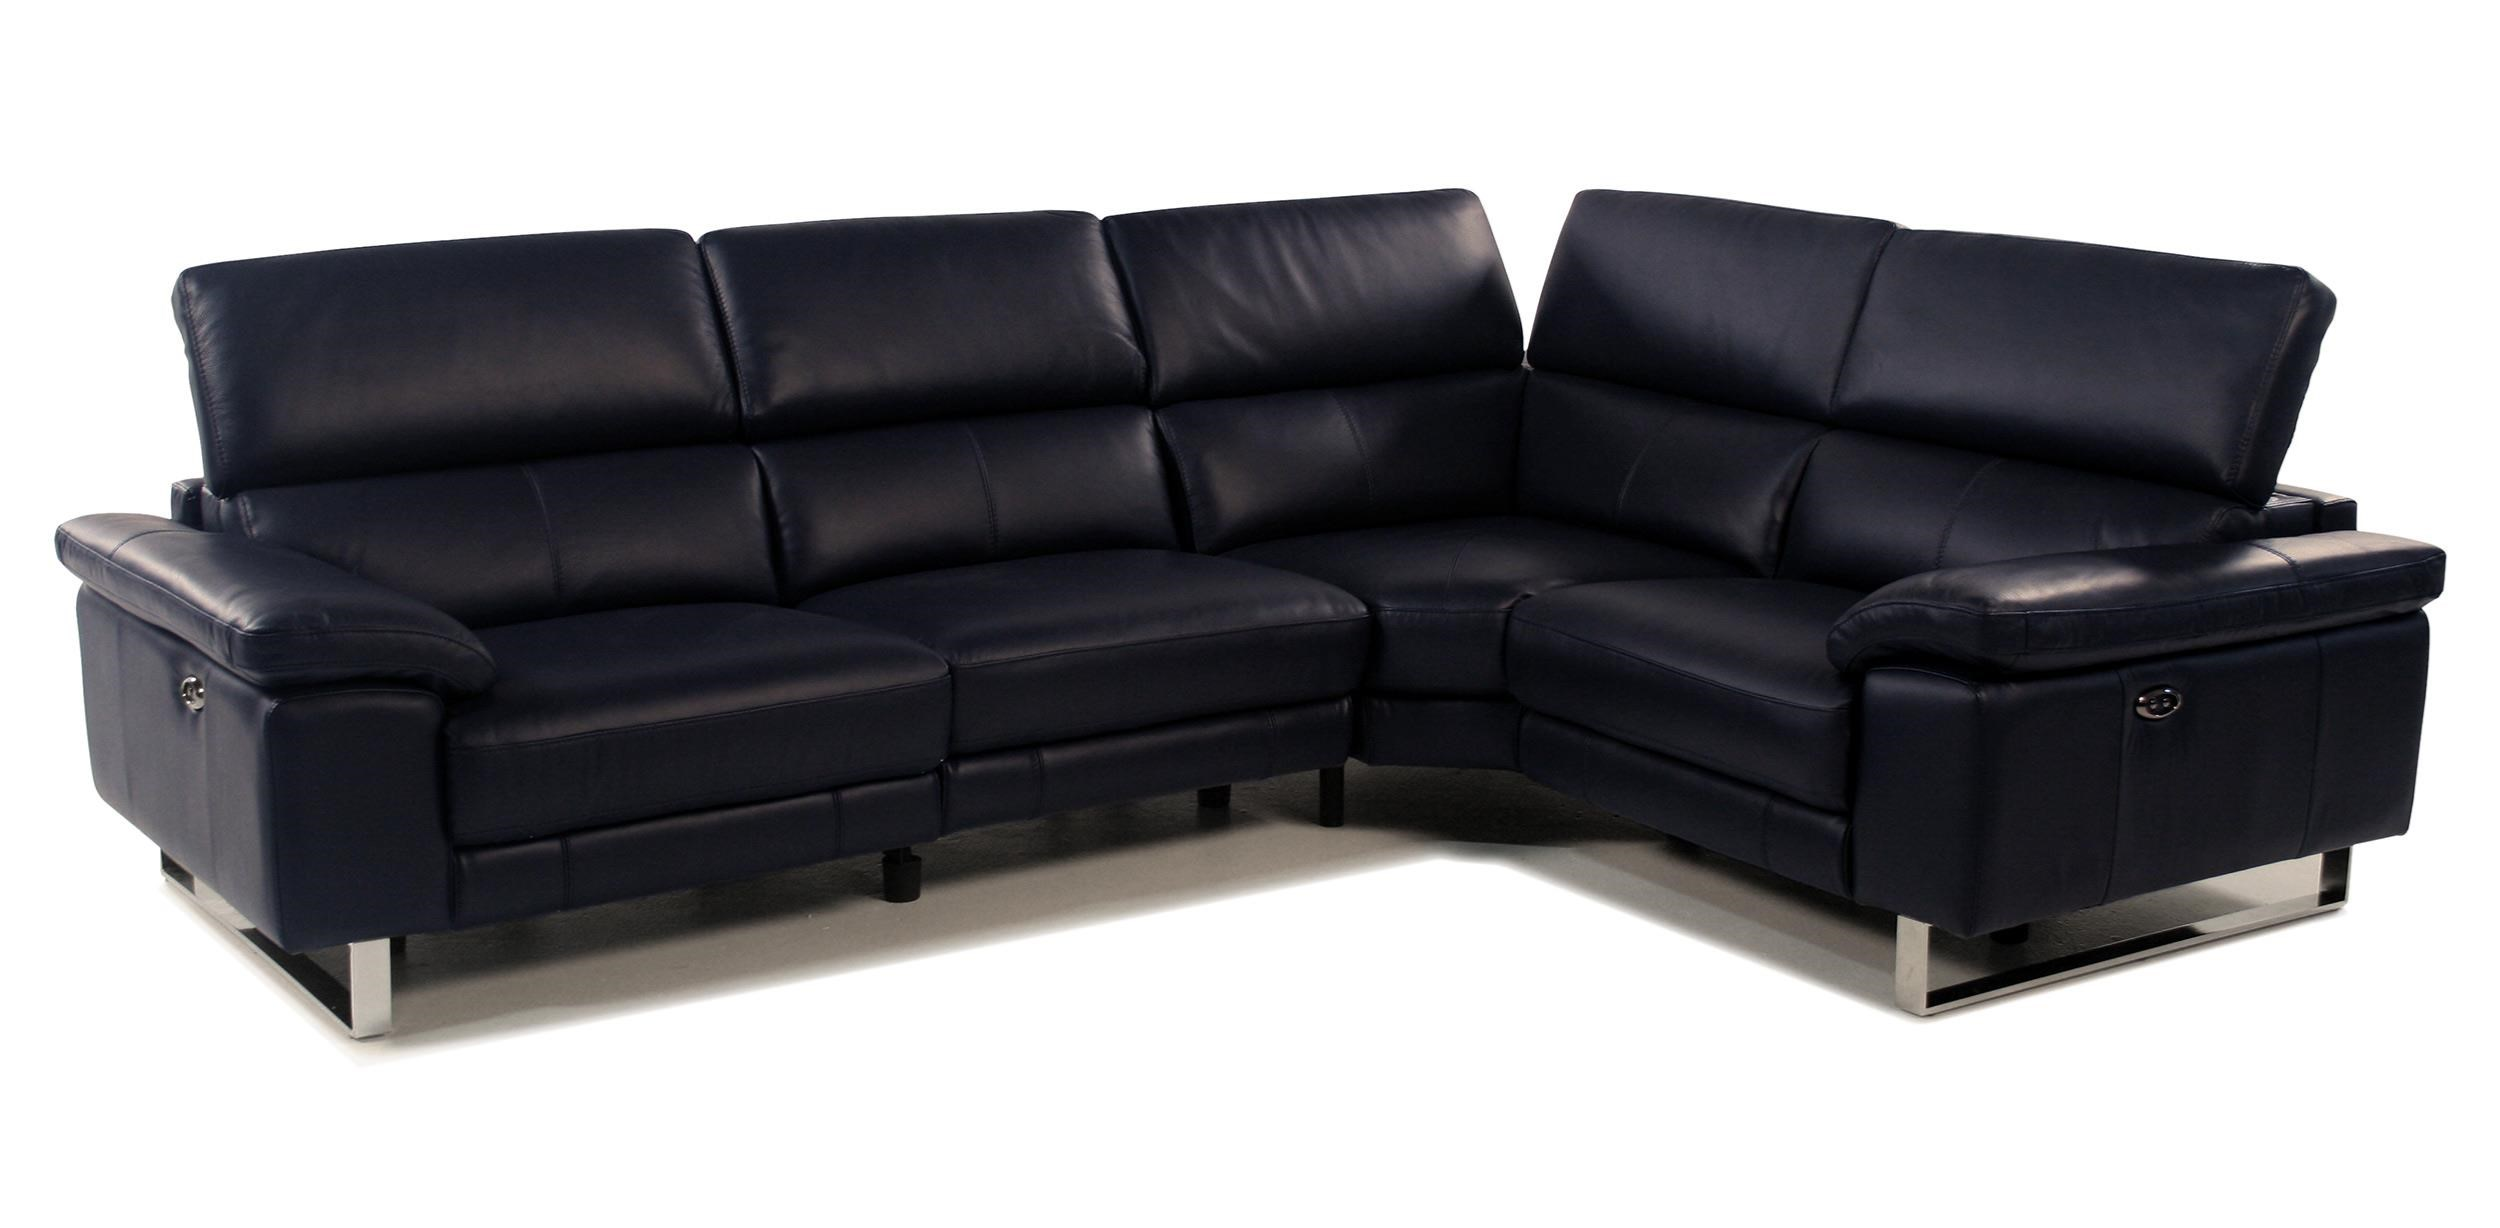 Giovani Horizons 2 Piece Power Reclining Leather Sectional - Item Number: RS-10565-2PC